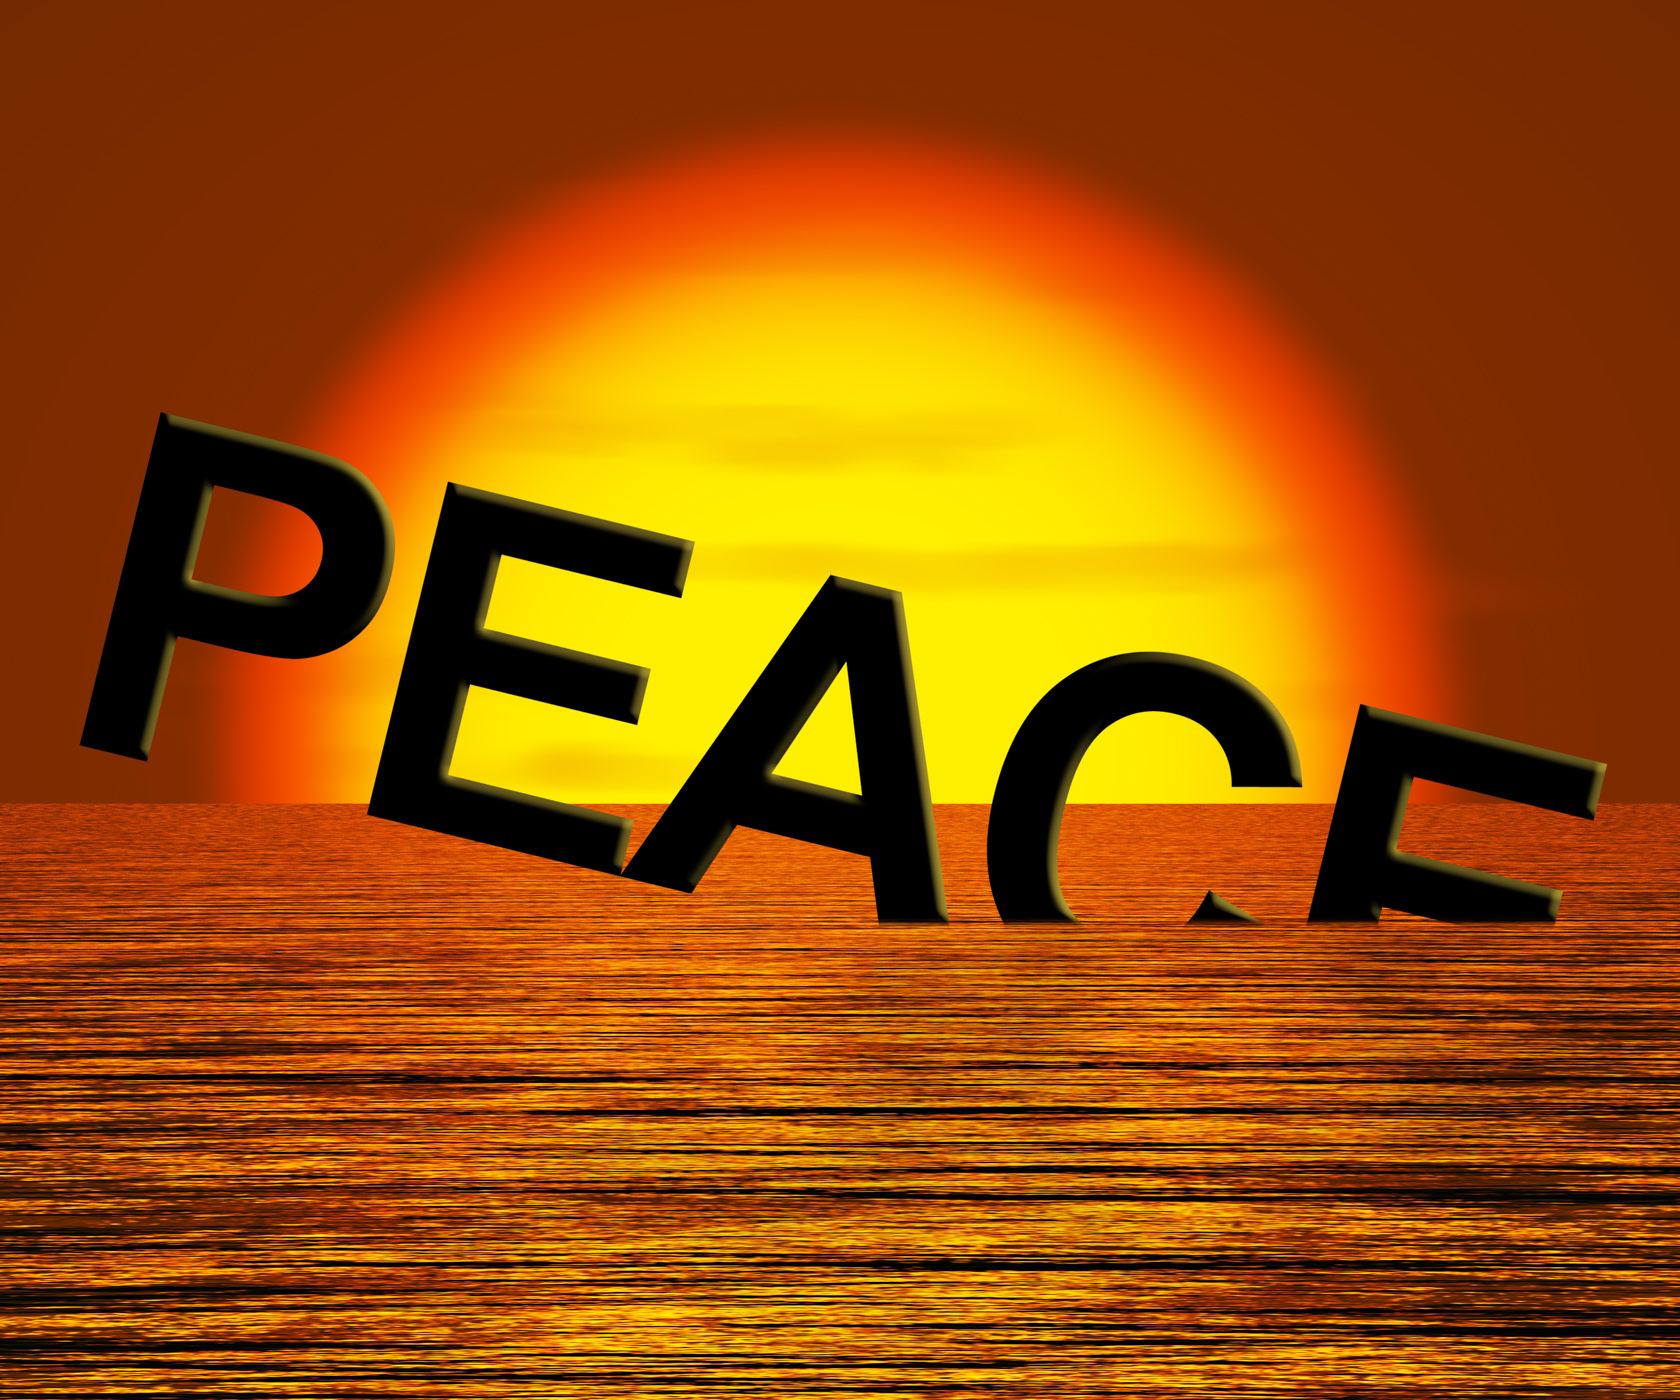 Peace word sinking showing war and conflict photo